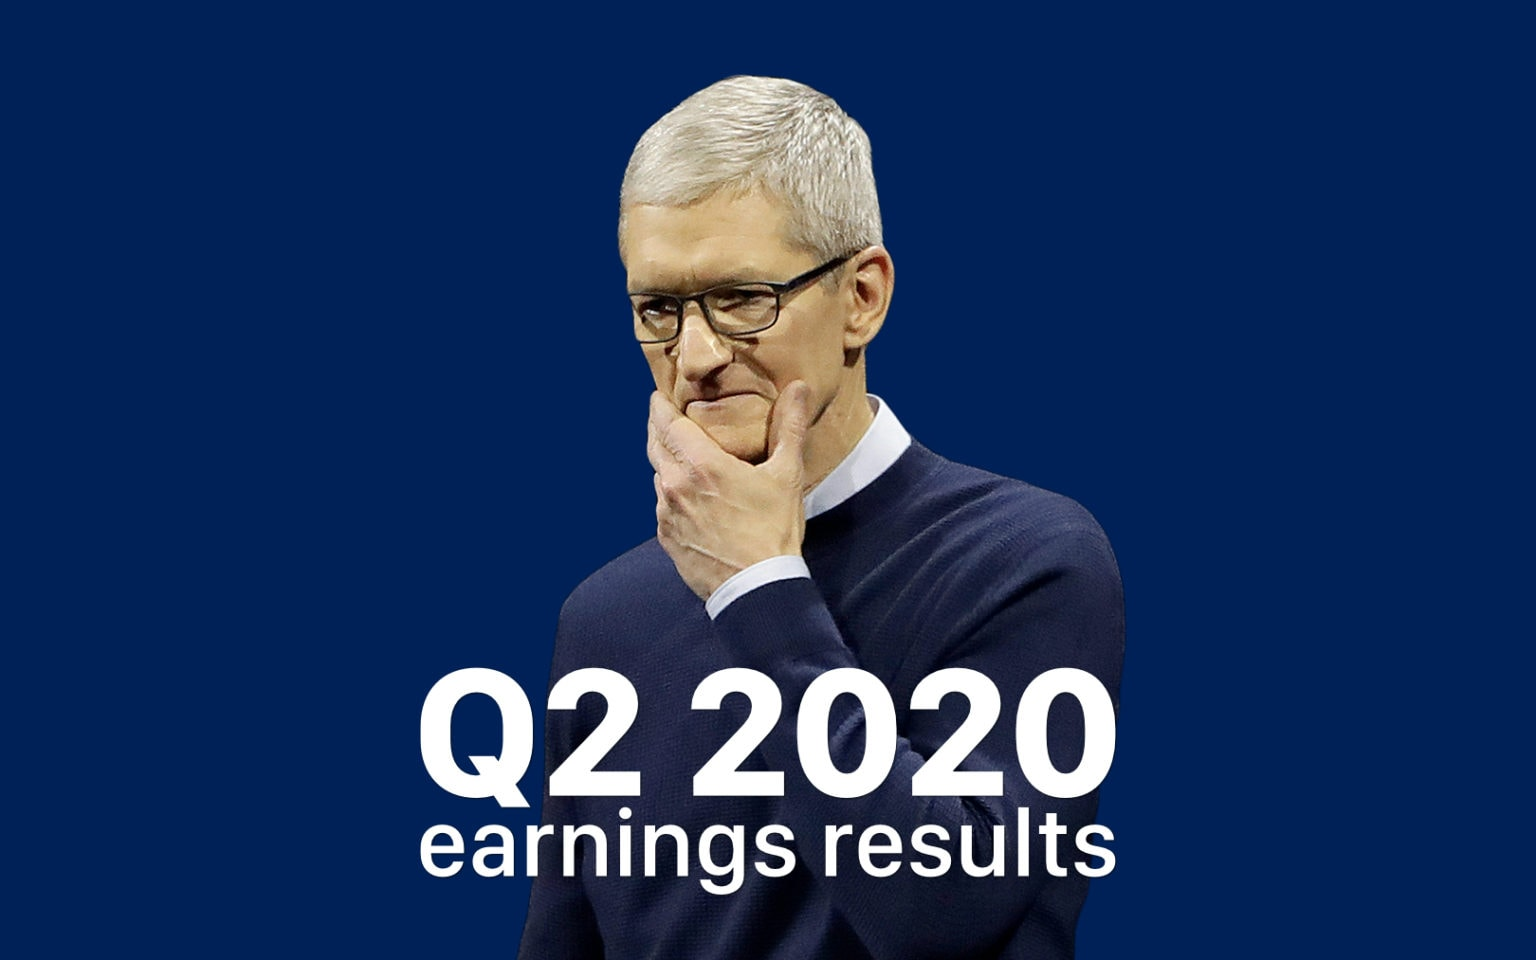 Tim Cook Apple 2020 Q2 earnings results: Even during a pandemic, Apple is a money machine.